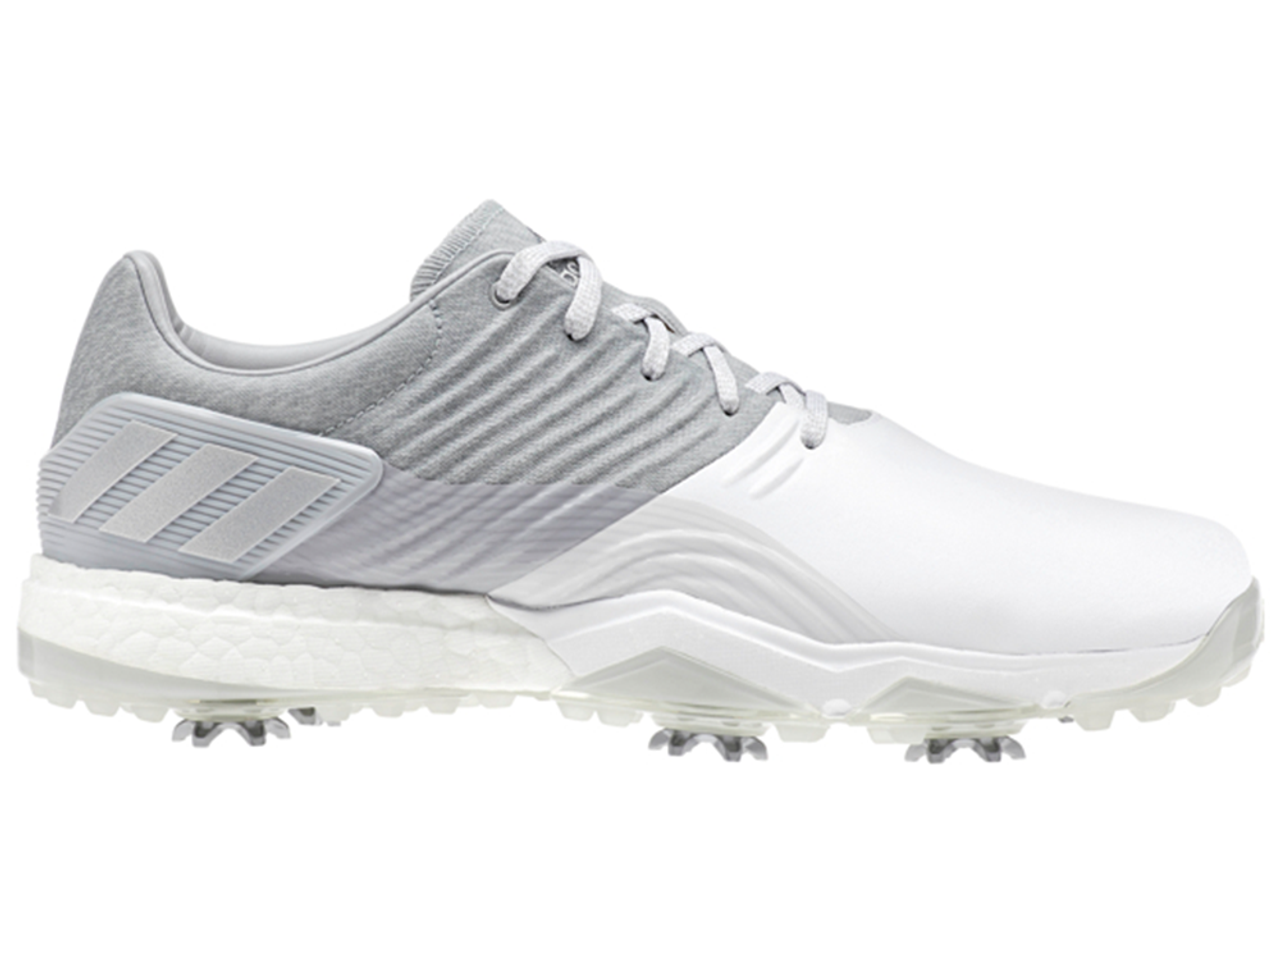 Adidas Adipower 4orged Golf Shoes - Clear Onix White Silver - Mens ... b936ed043